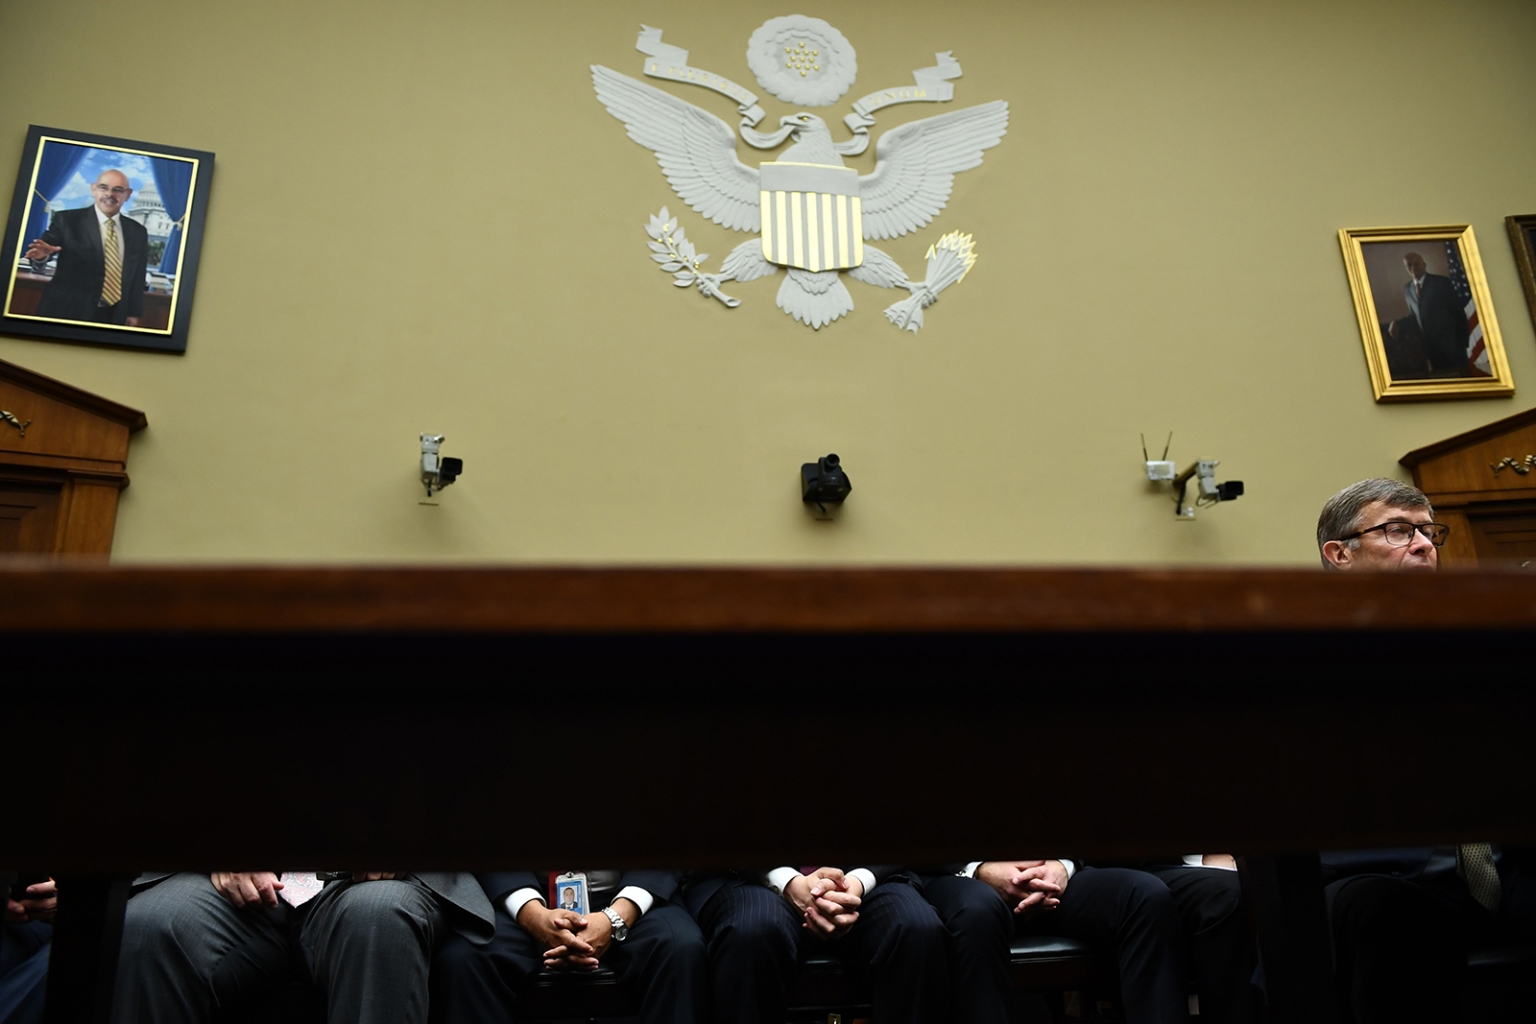 Acting Director of National Intelligence Joseph Maguire testifies about a whistleblower complaint that accuses U.S. President Donald Trump of abuse of power during a hearing in Washington on Sept. 26. BRENDAN SMIALOWSKI/AFP/Getty Images